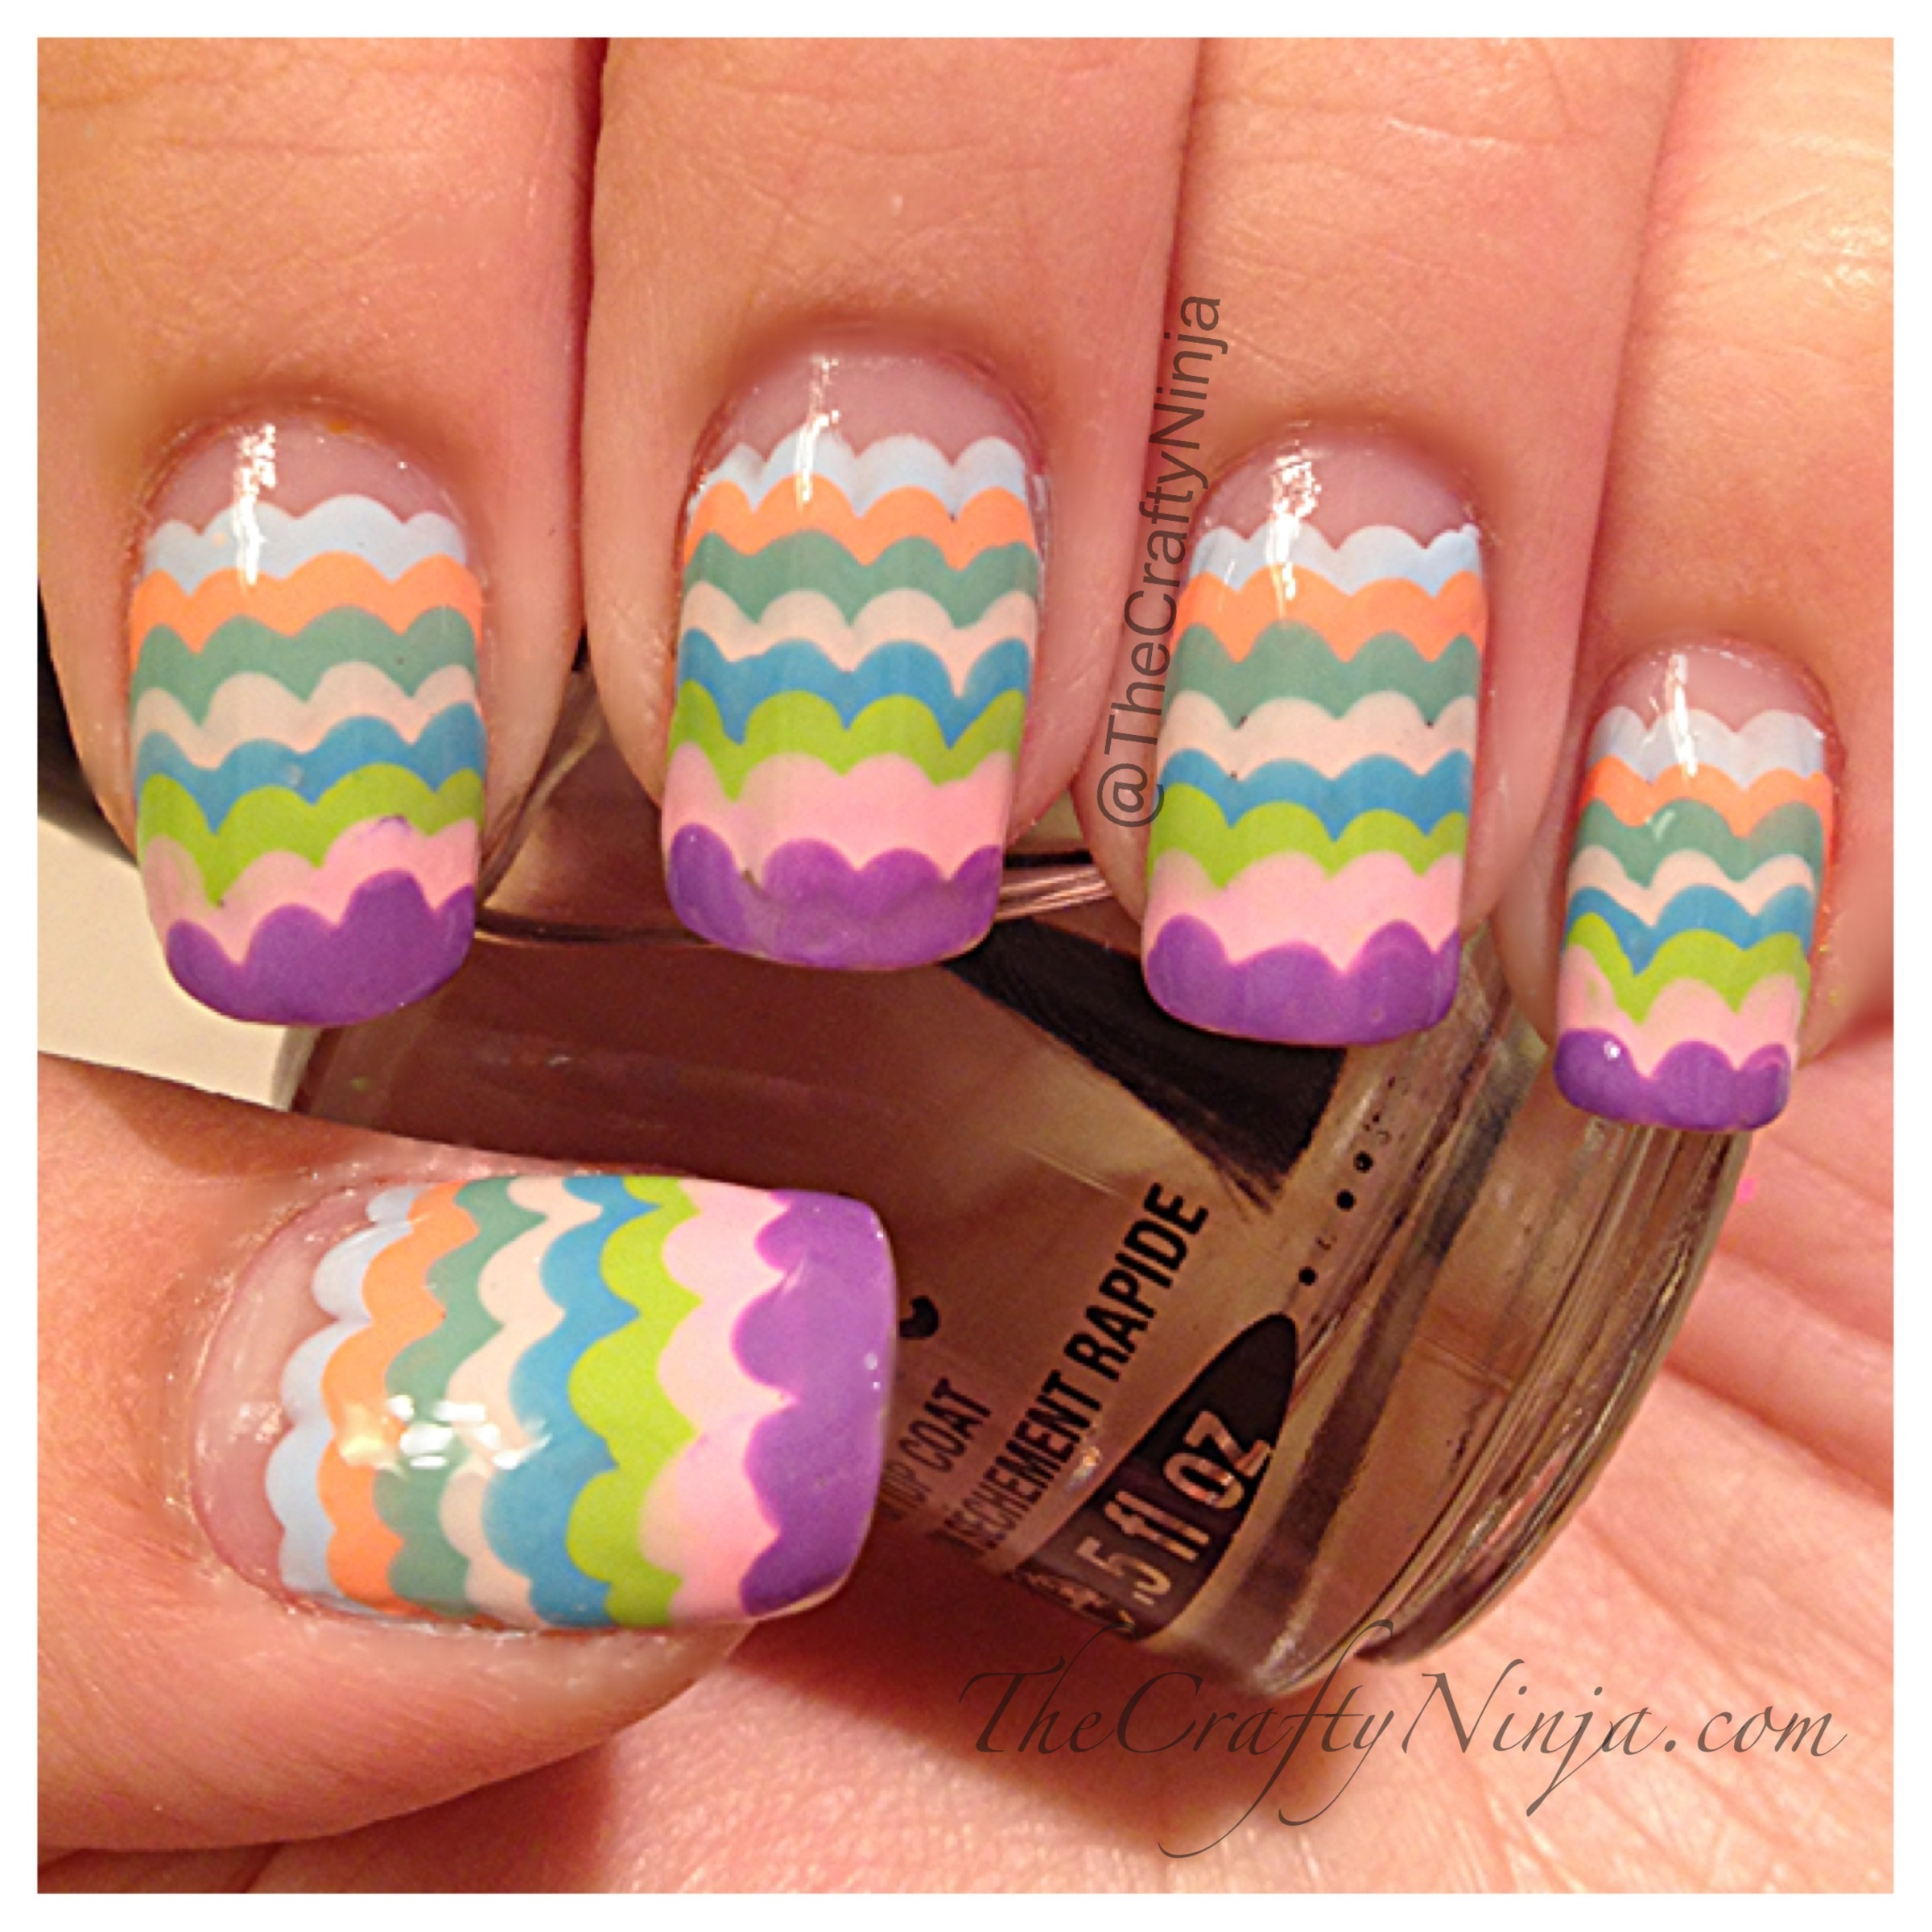 Three Dots Between Thumb And Index Finger: Scallop Pastel Nails